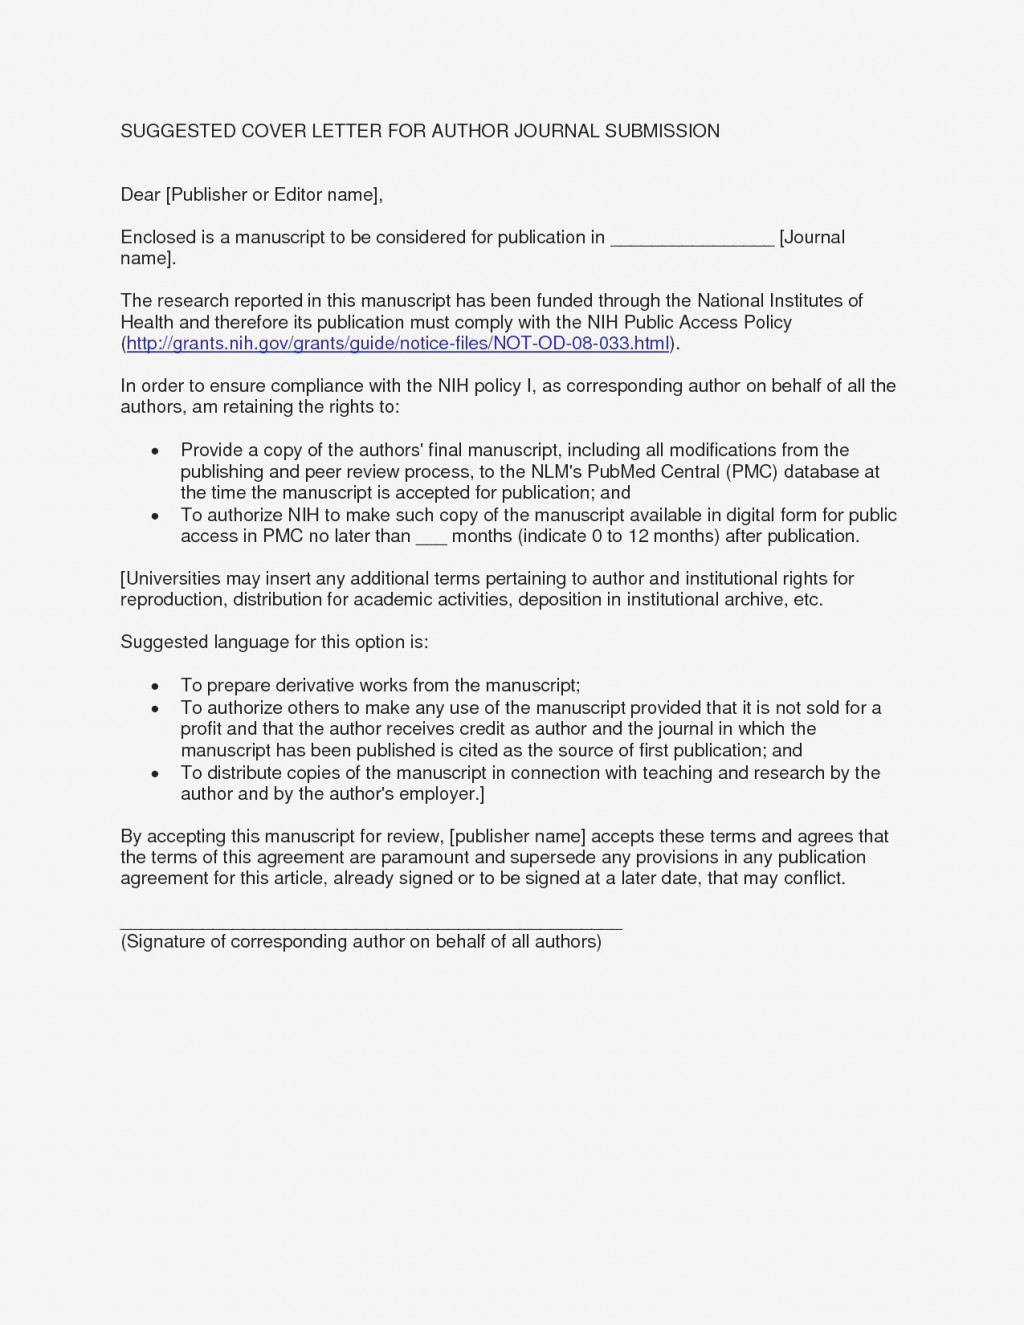 015 Research Paper Cover Letter Sample Assistant New Medical Resume Clinical Wonderful For Article Submission Large